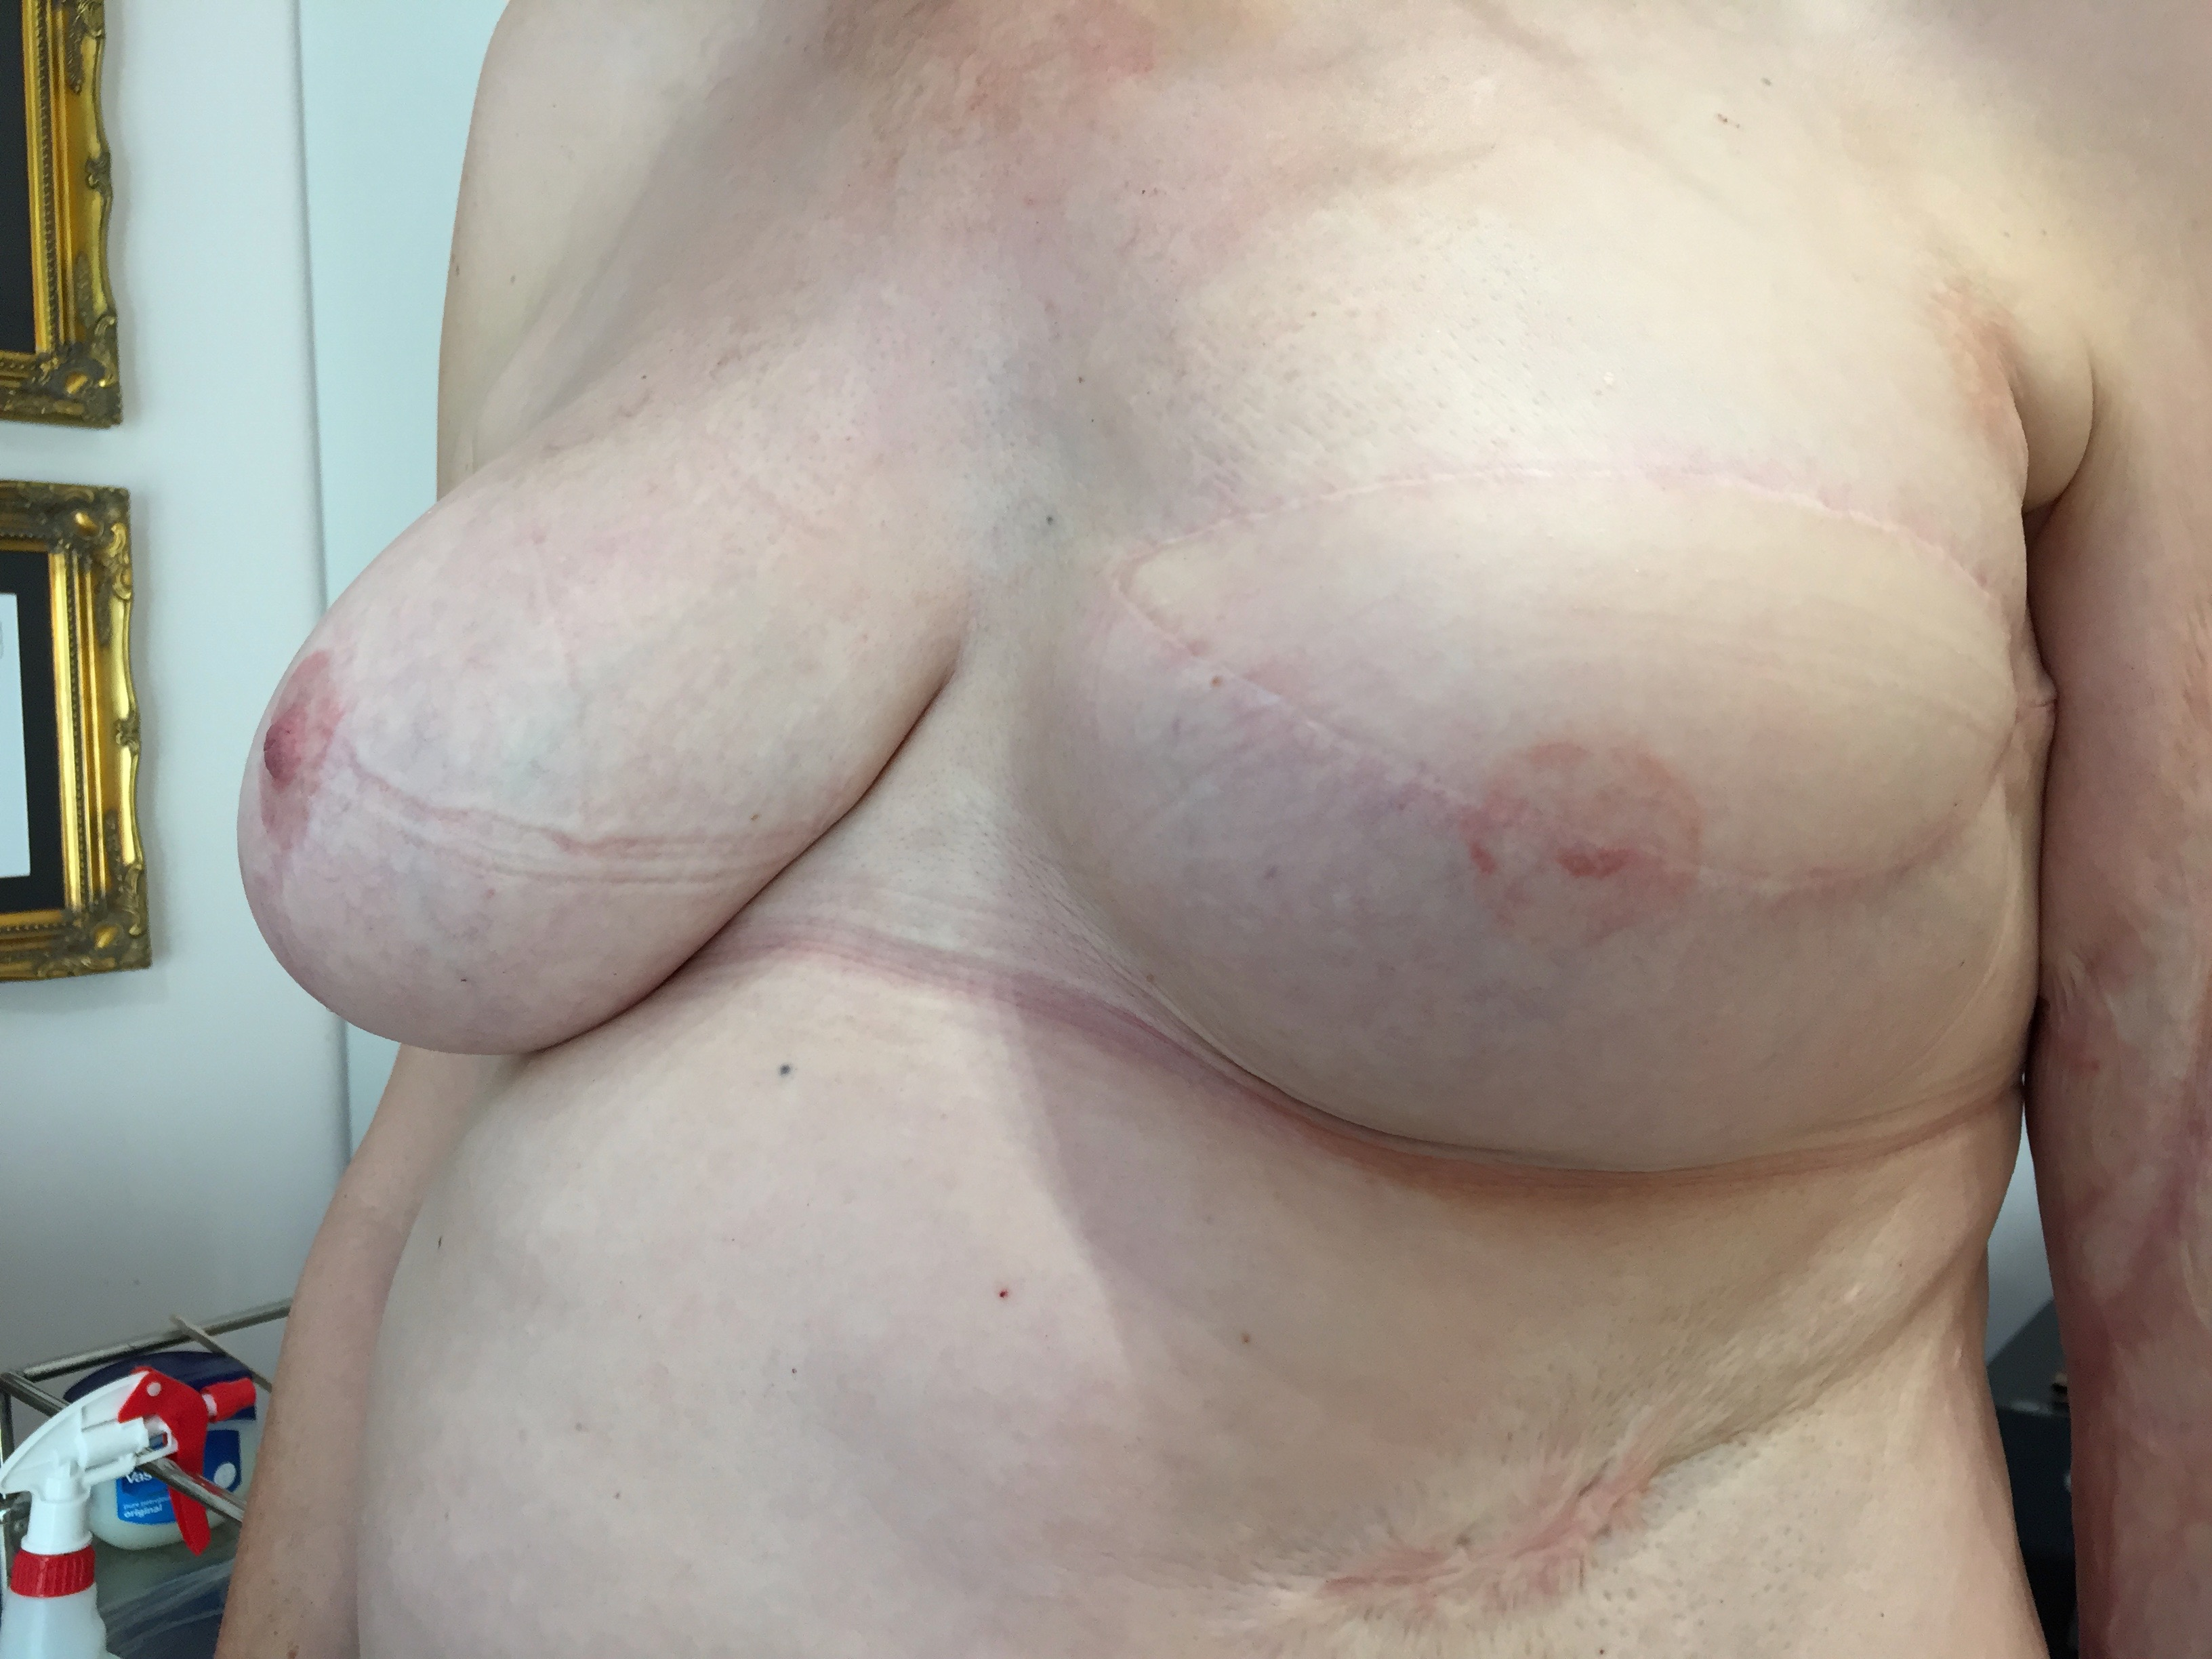 Cancer survivor, offering hope to women recovering from breast cancer, hopes to get her tattoo techniques recognised by the NHS